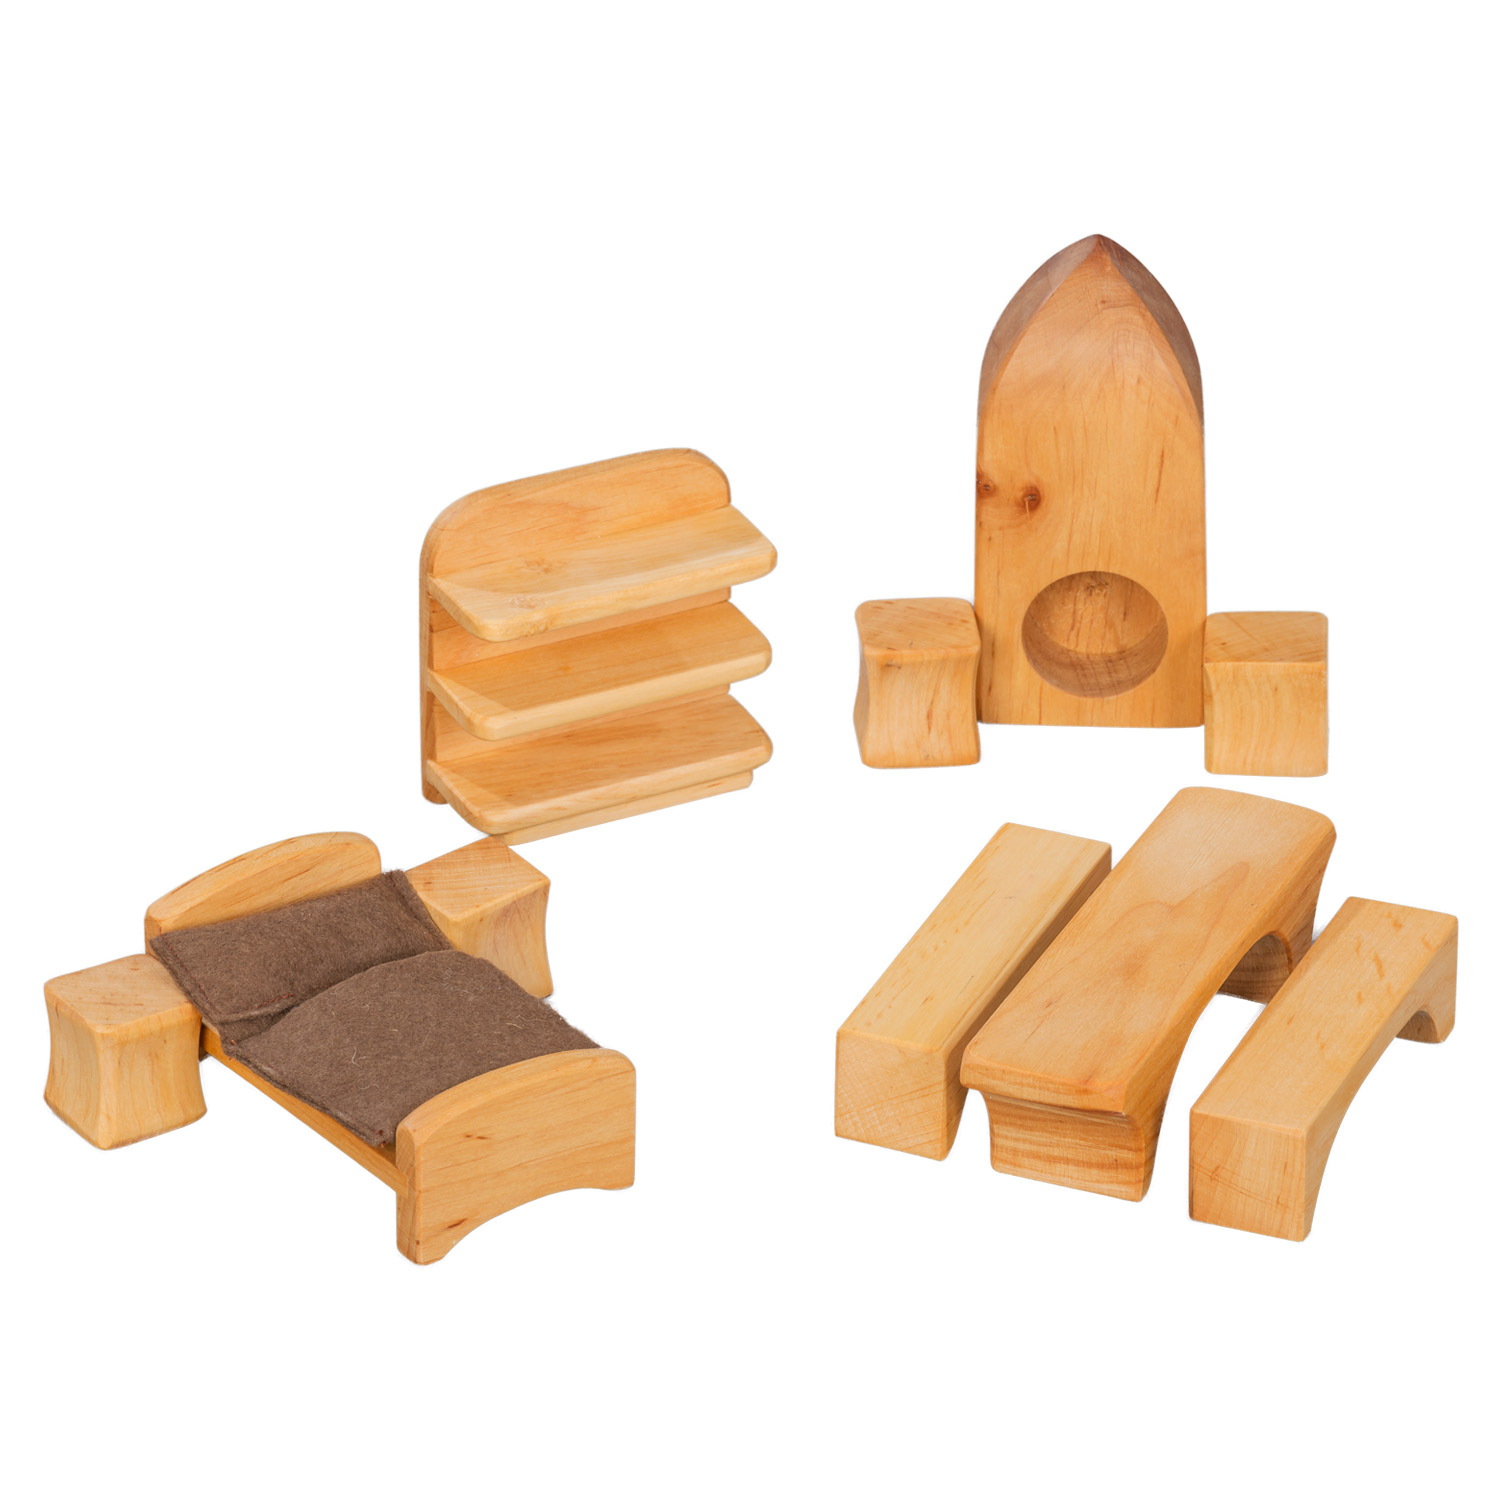 Set of Wooden Doll House Furniture 10 Pieces